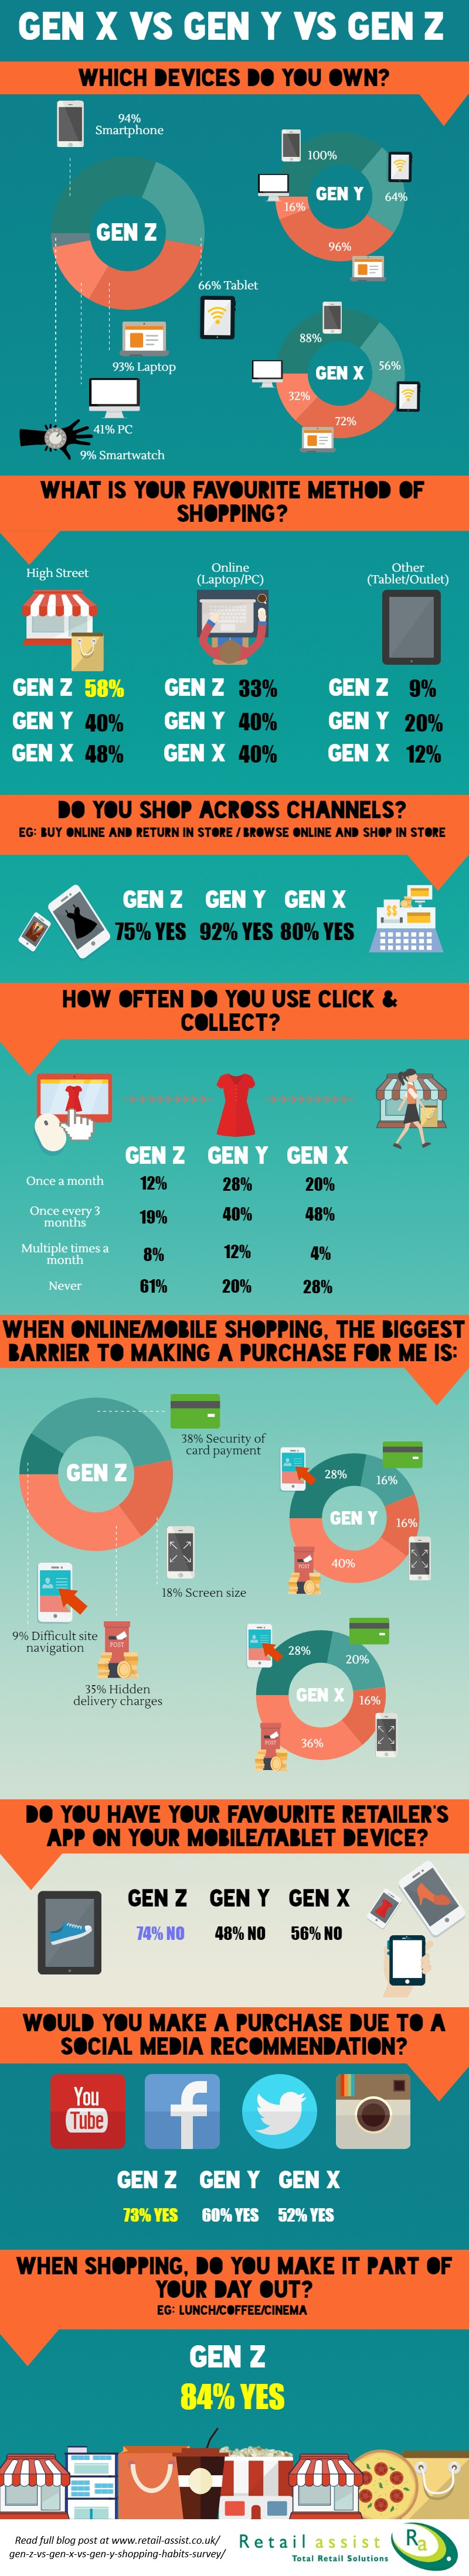 Gen Z vs Gen X vs Gen Y: Shopping Habits Survey Infographic